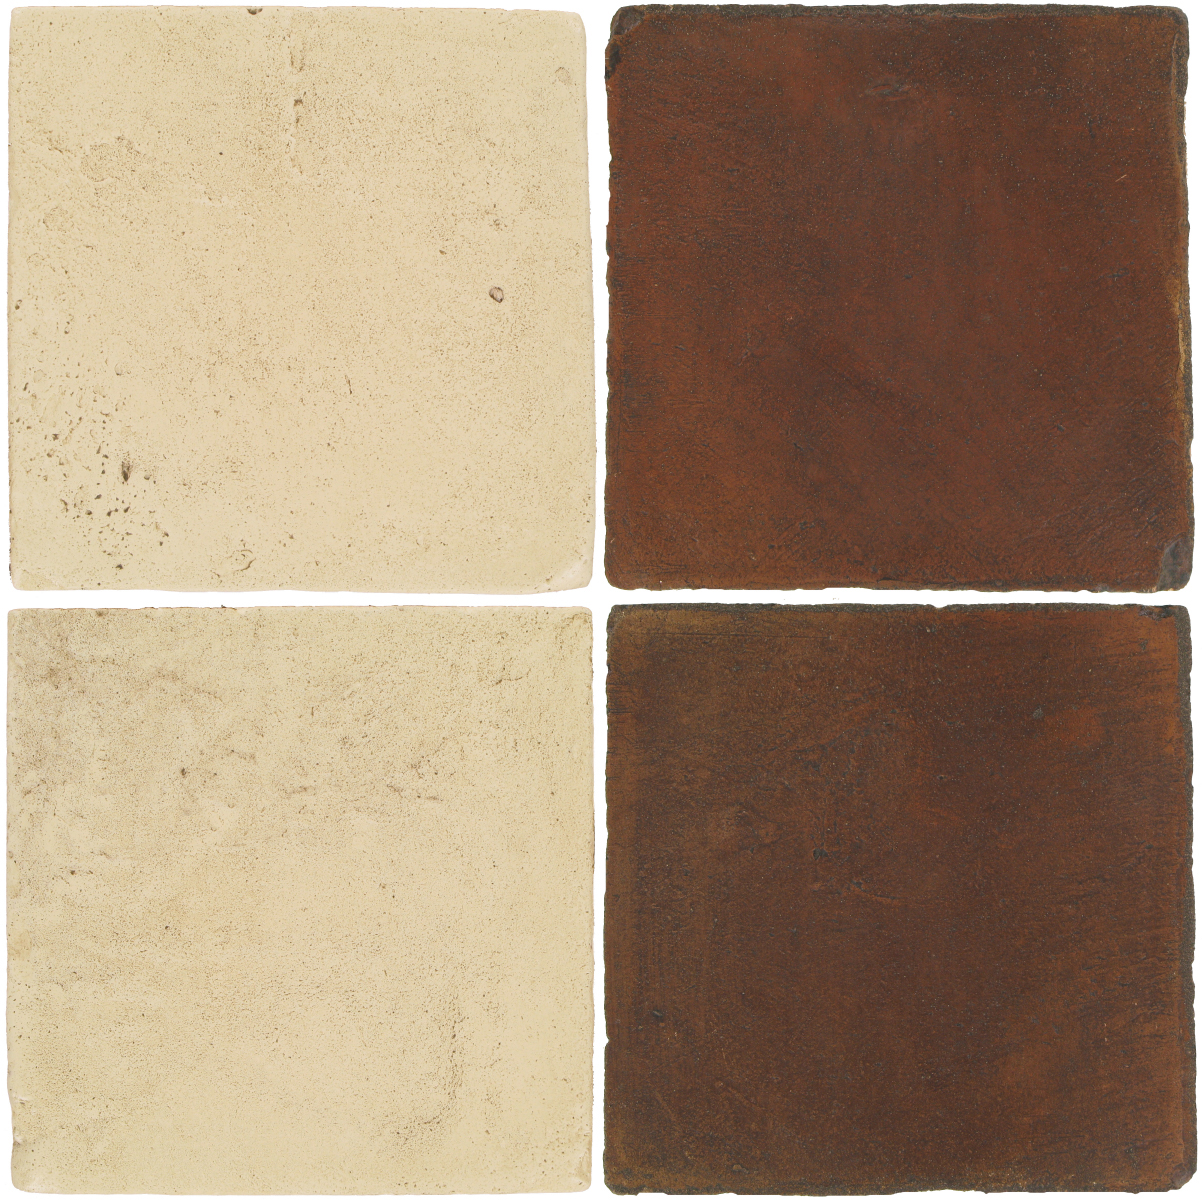 Pedralbes Antique Terracotta  2 Color Combinations  VTG-PGPW Pergamino White + OHS-PSOW Old World